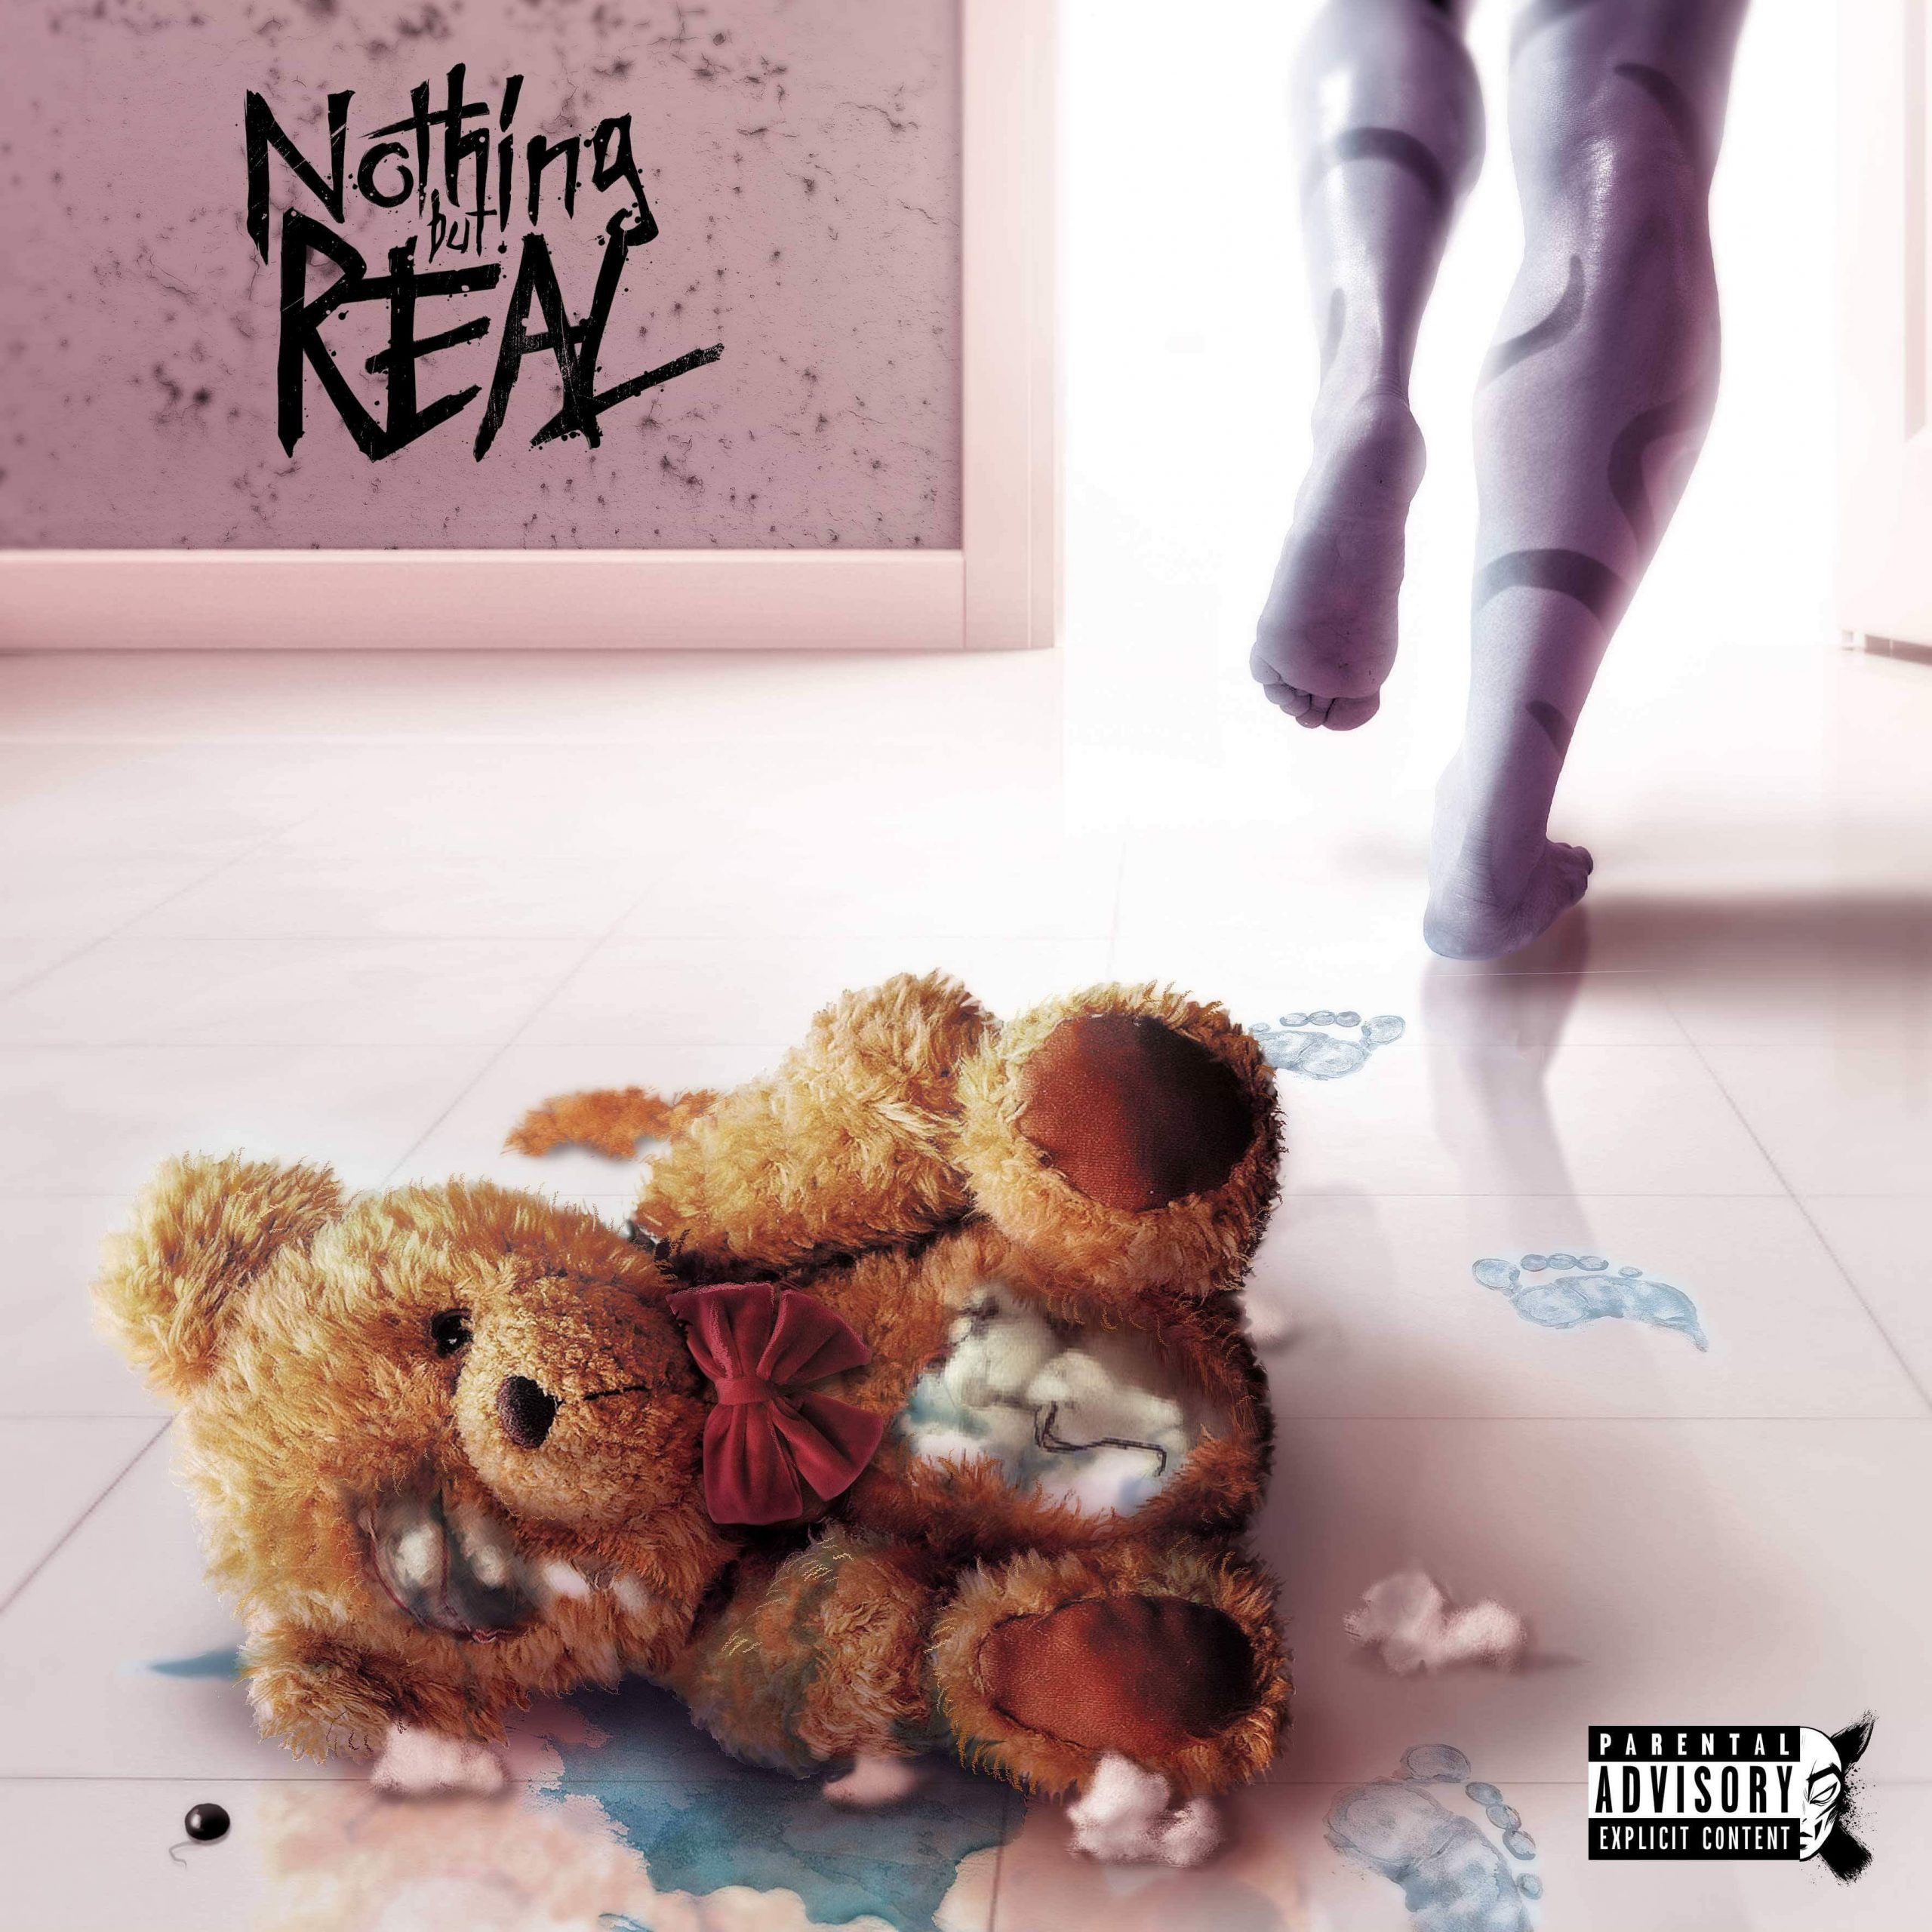 nothing-but-real-nothing-but-real-ein-album-review